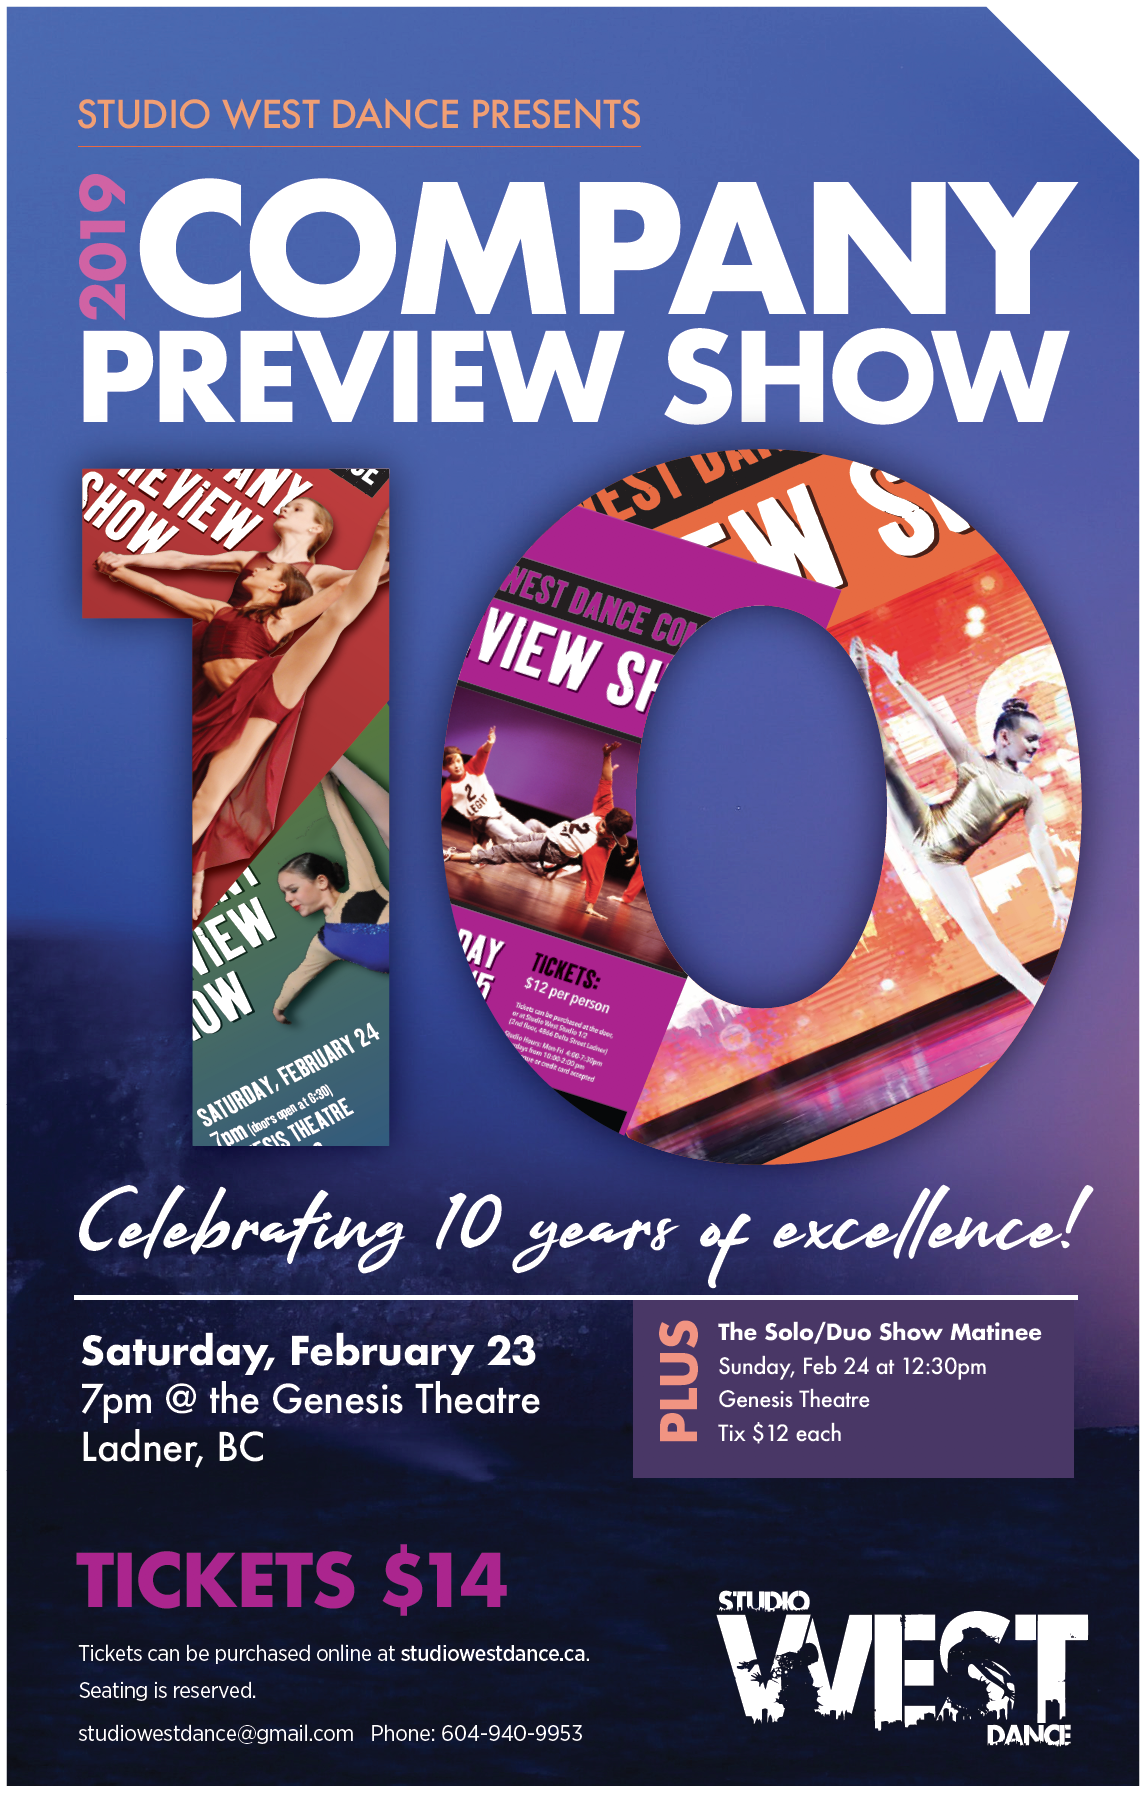 SWD_Poster_CompanyPreviewShow_2019.png